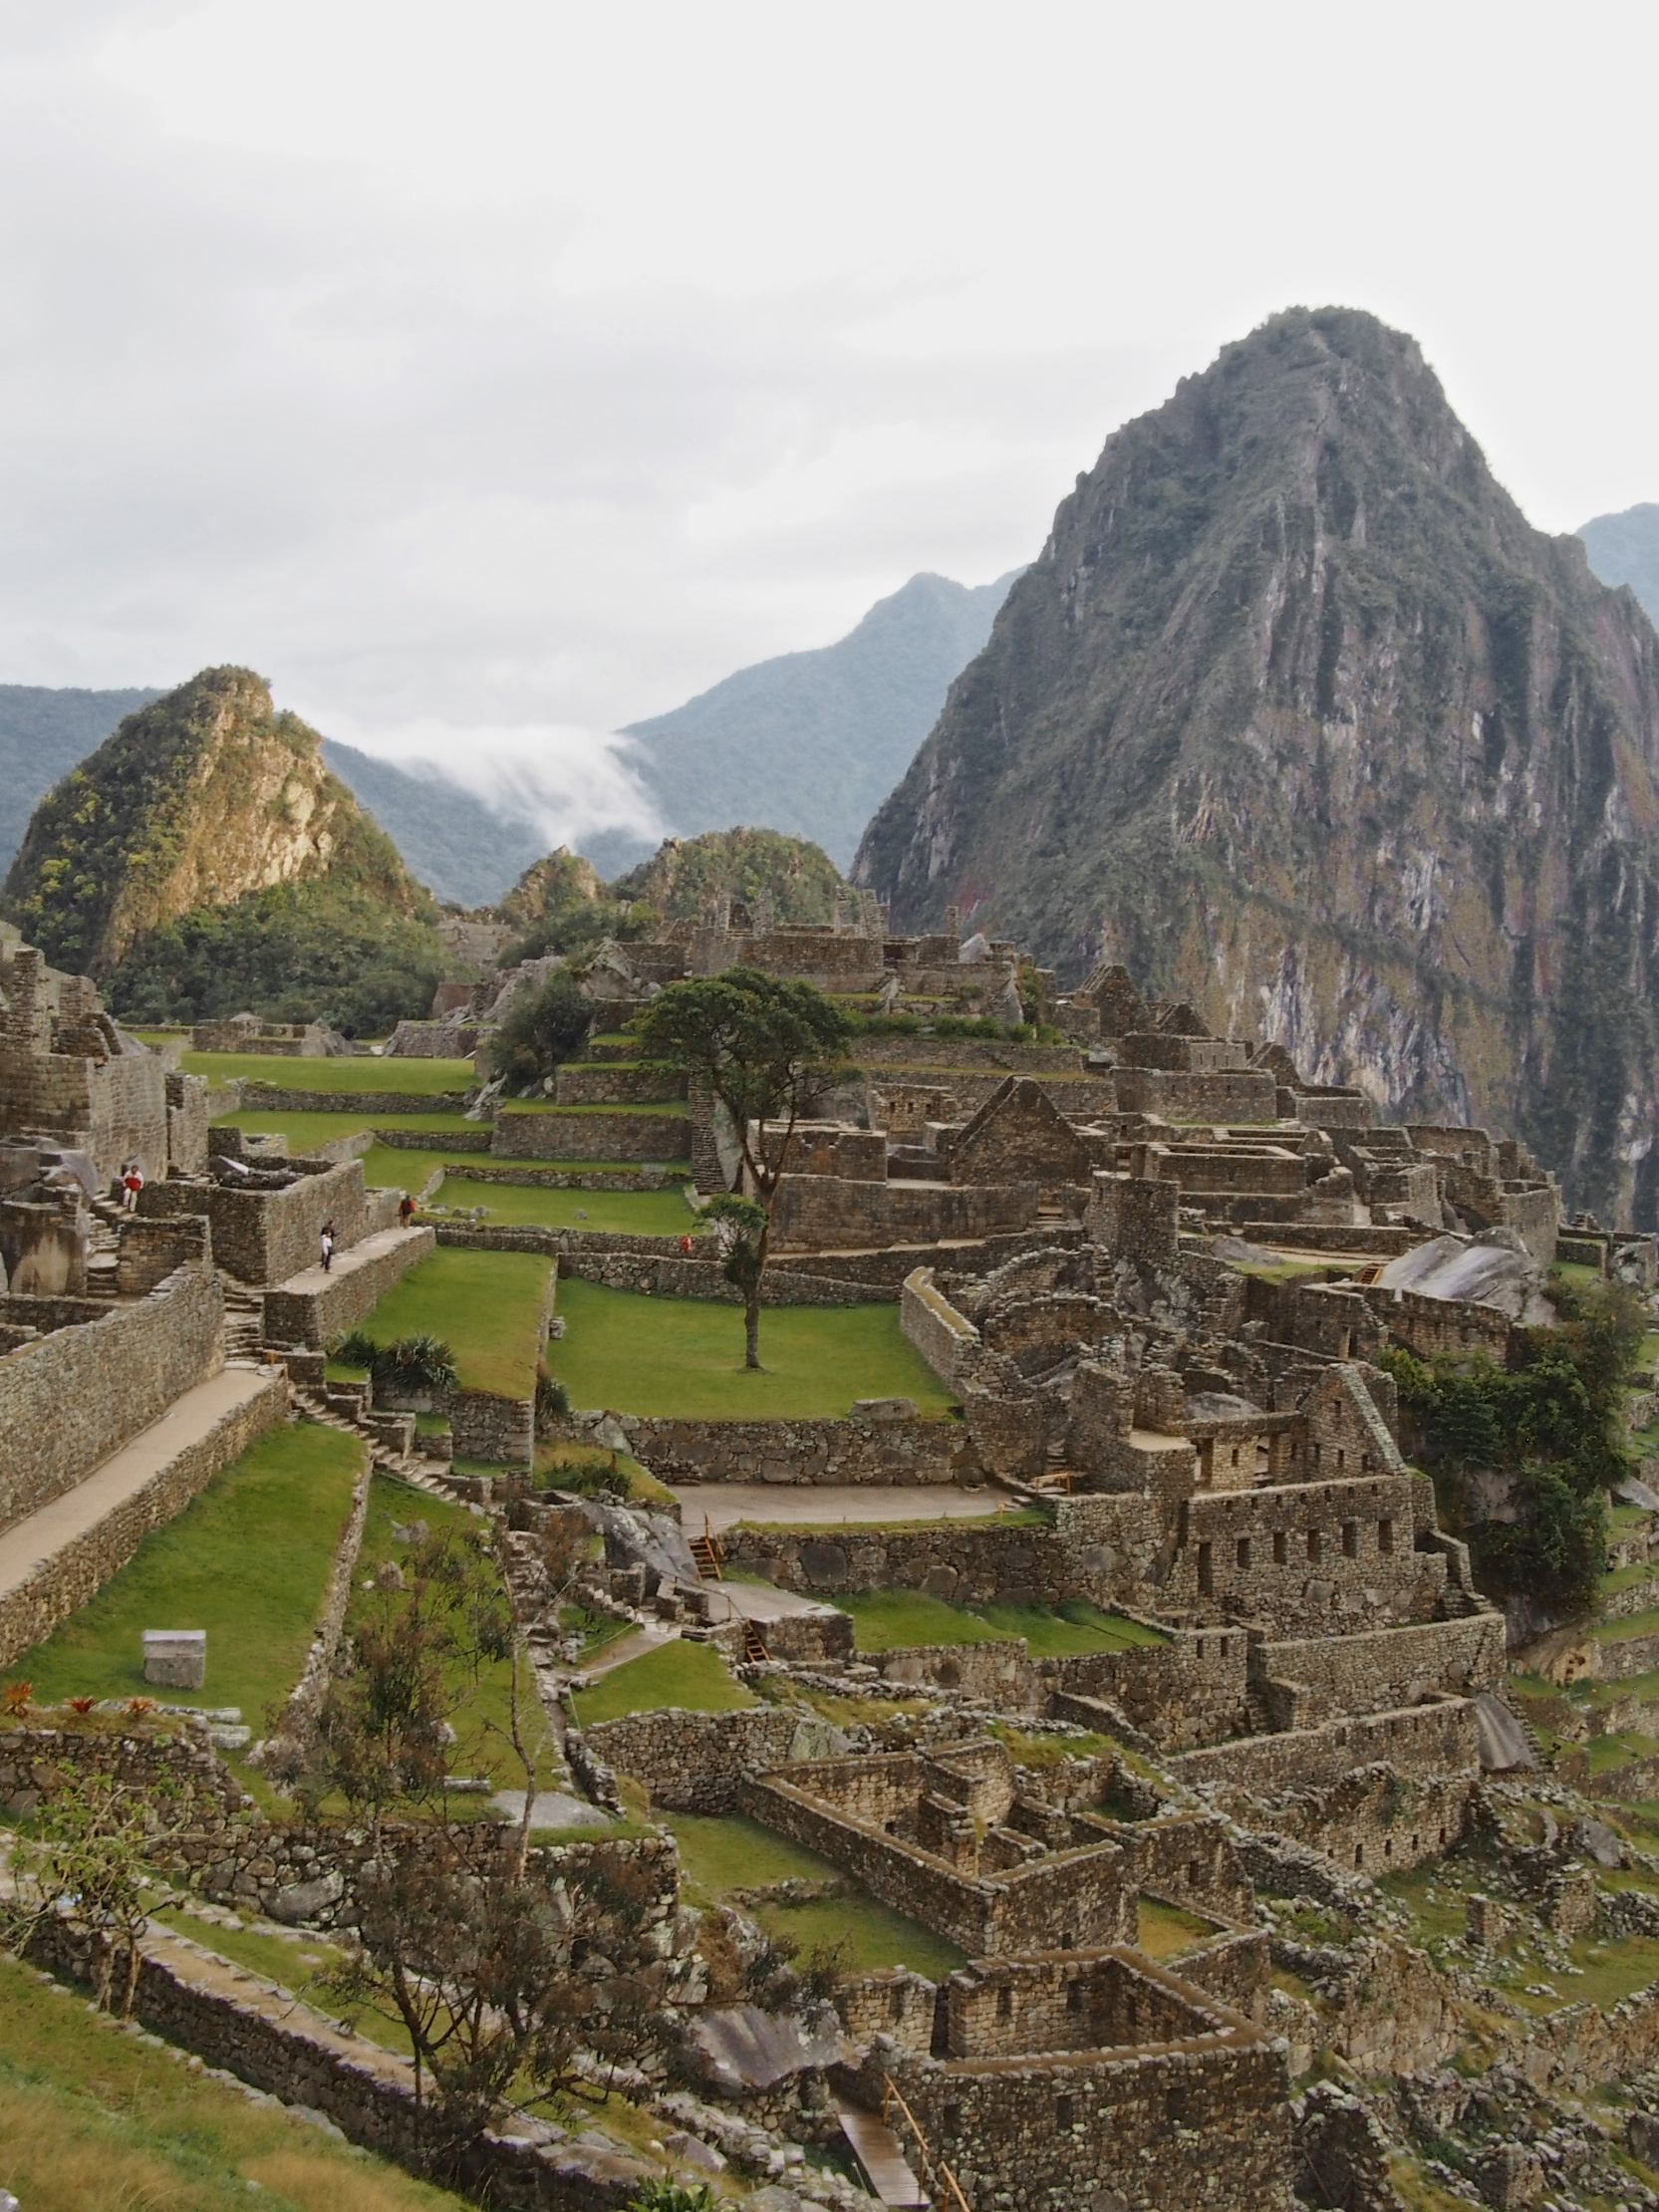 First view of Machu Picchu once you arrive to the site